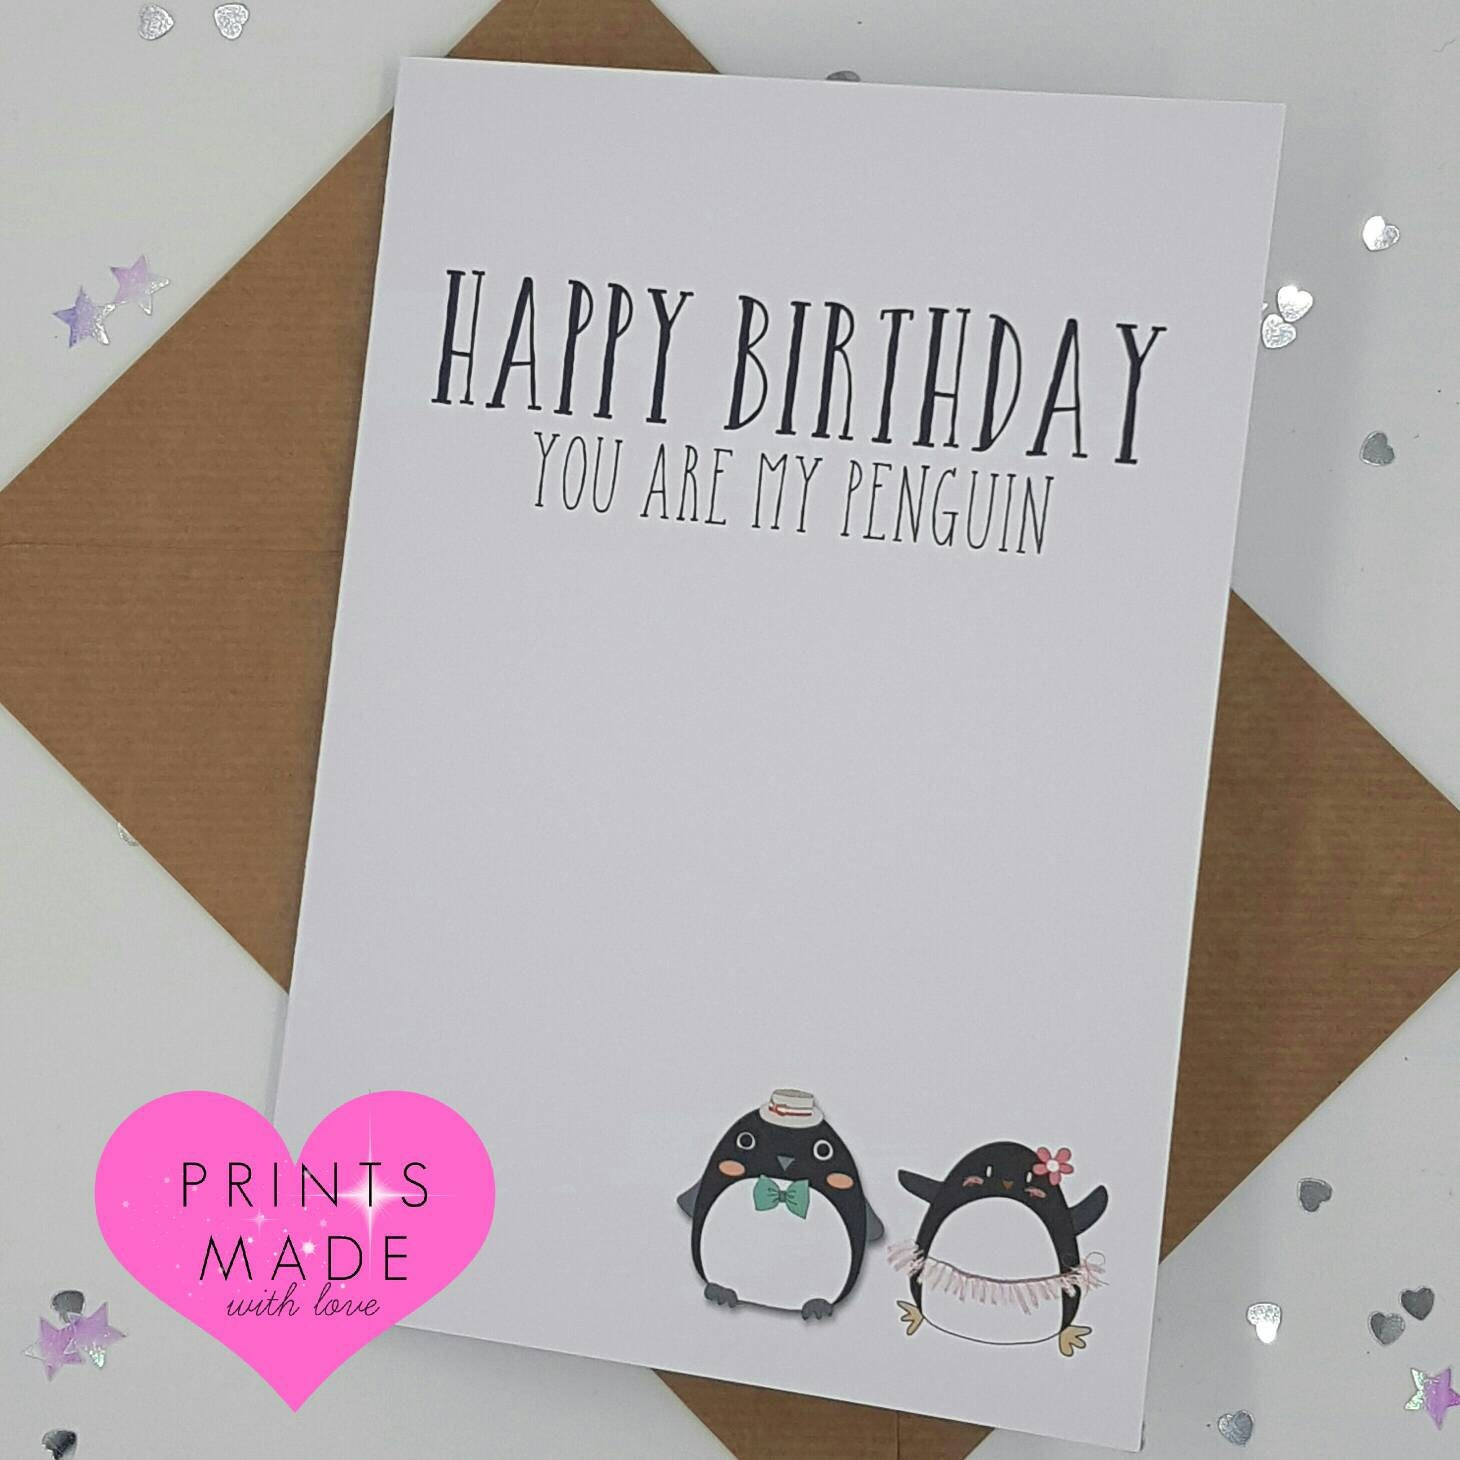 Beautiful birthday cards for girlfriend pics eccleshallfc boyfriend birthday card girlfriend birthday card wife bookmarktalkfo Choice Image